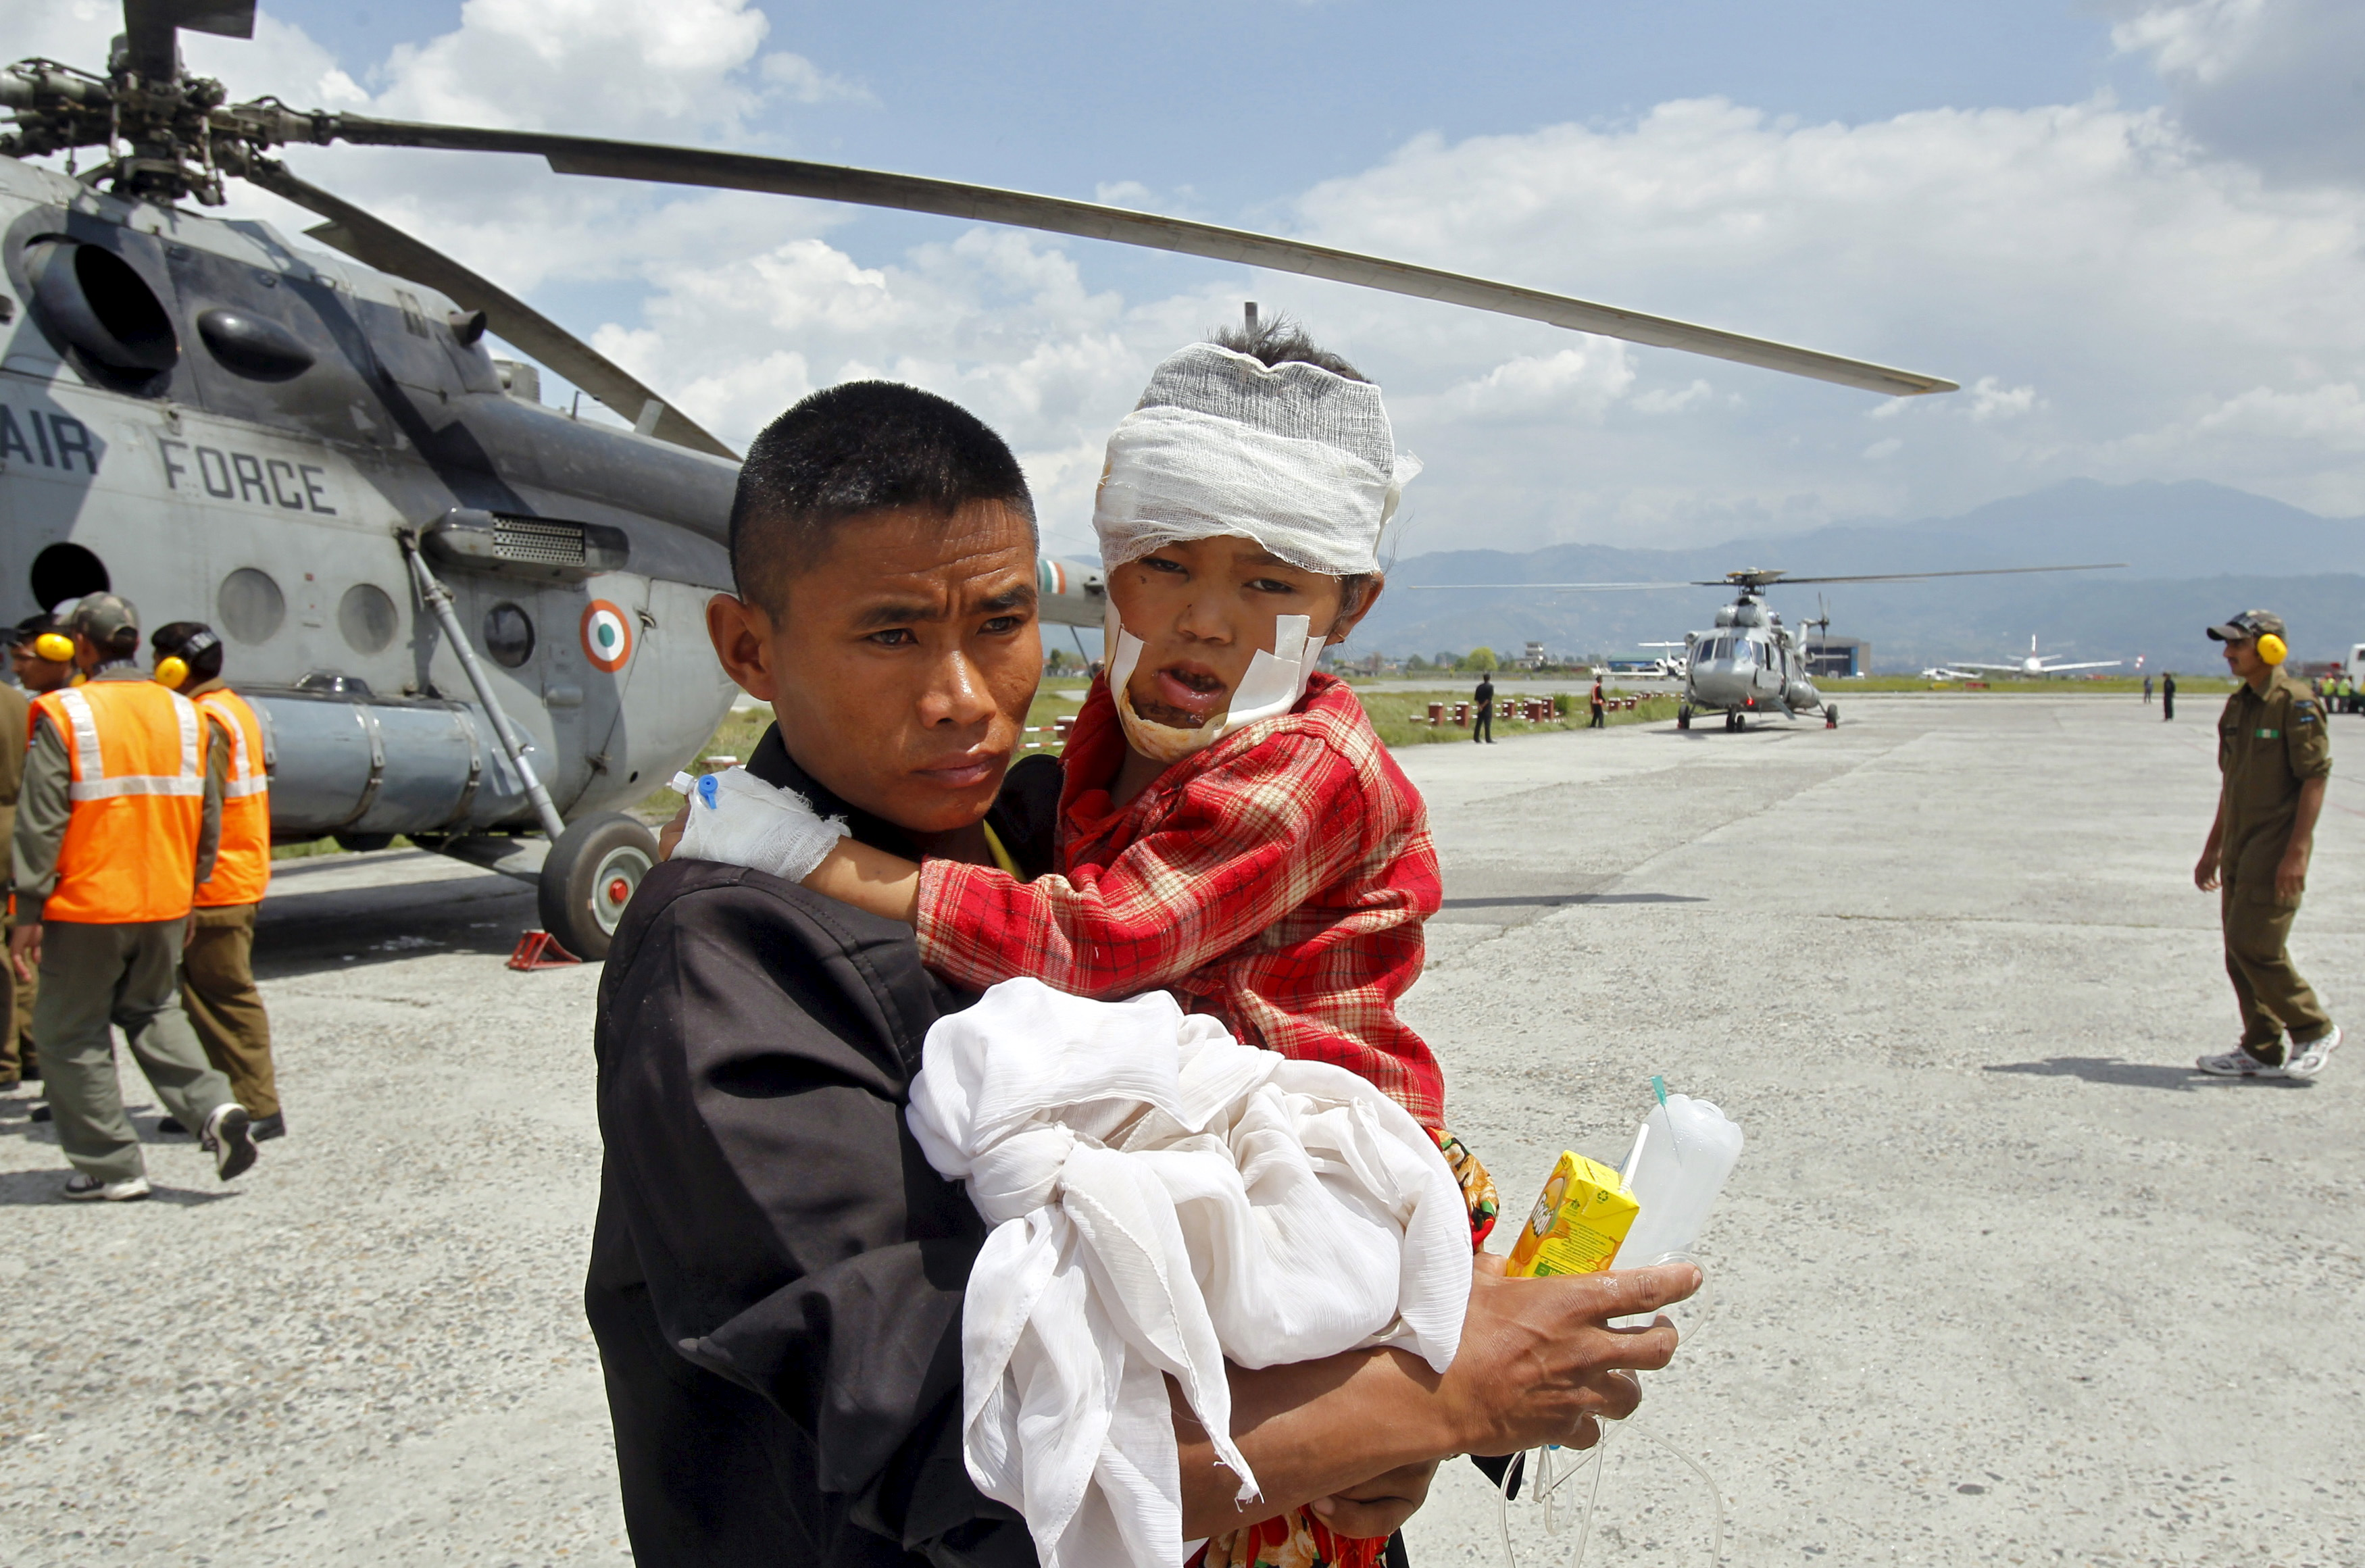 A man carries a child, who was wounded in Saturday's earthquake, after Indian Army soldiers evacuated them from Trishuli Bazar to the airport in Kathmandu, Nepal, on Monday. Photo by Jitendra Prakash/Reuters